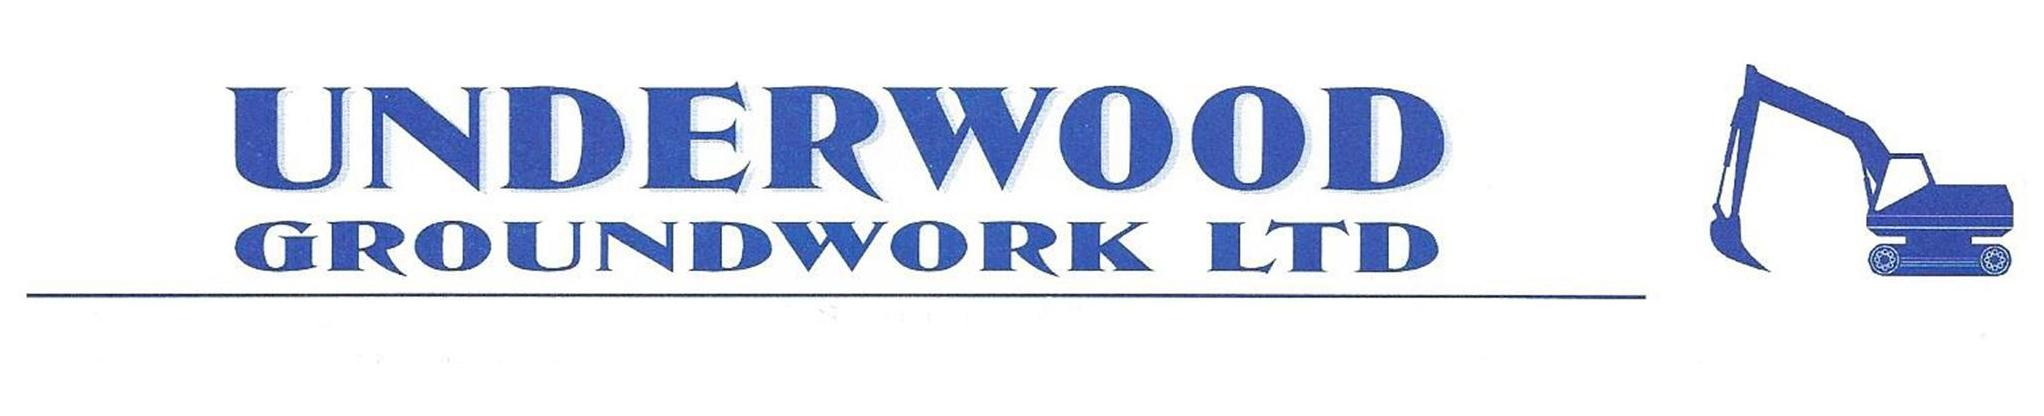 Underwood Groundworks logo